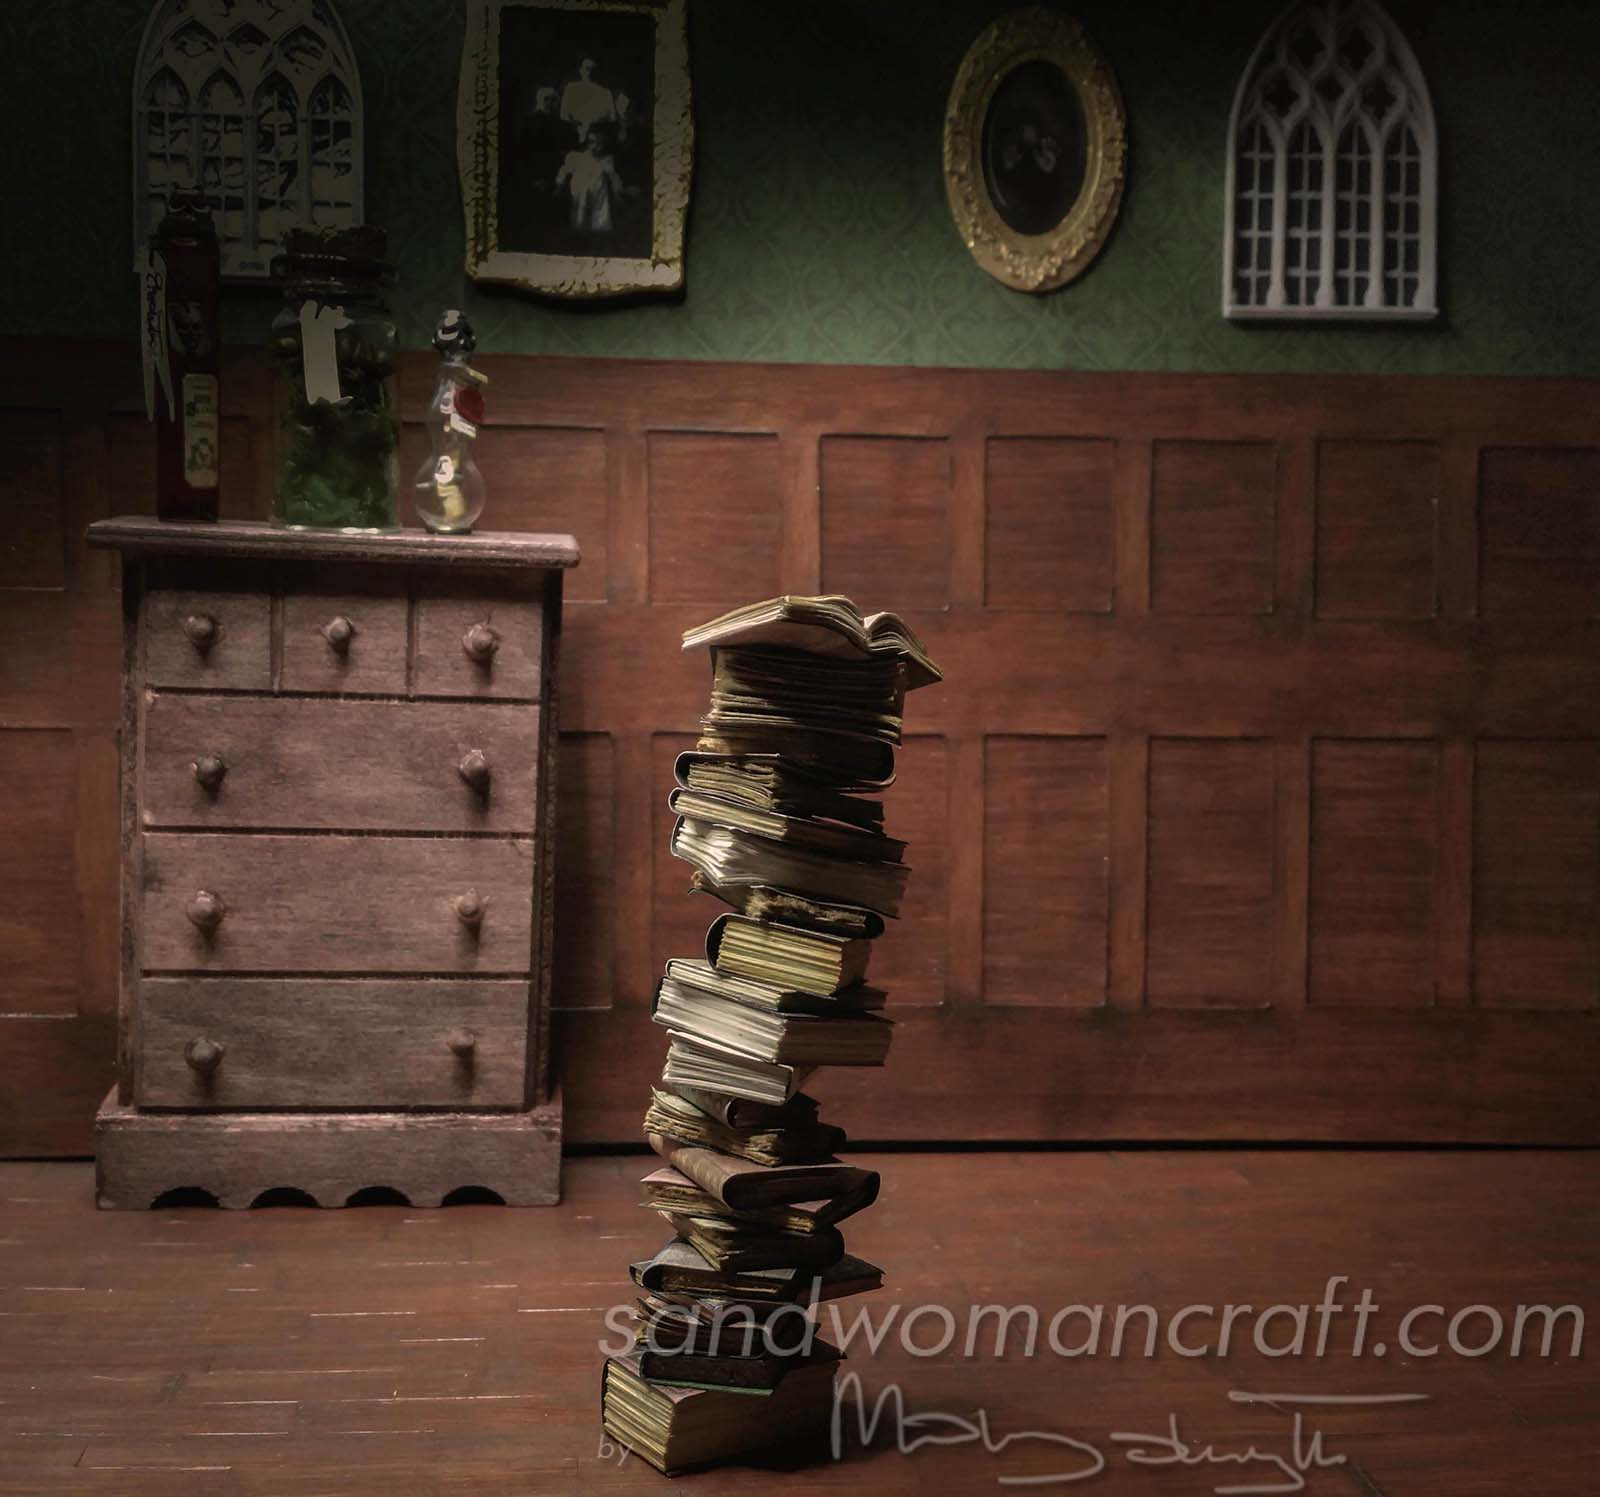 Gothic miniature book stack in 1:12 scale